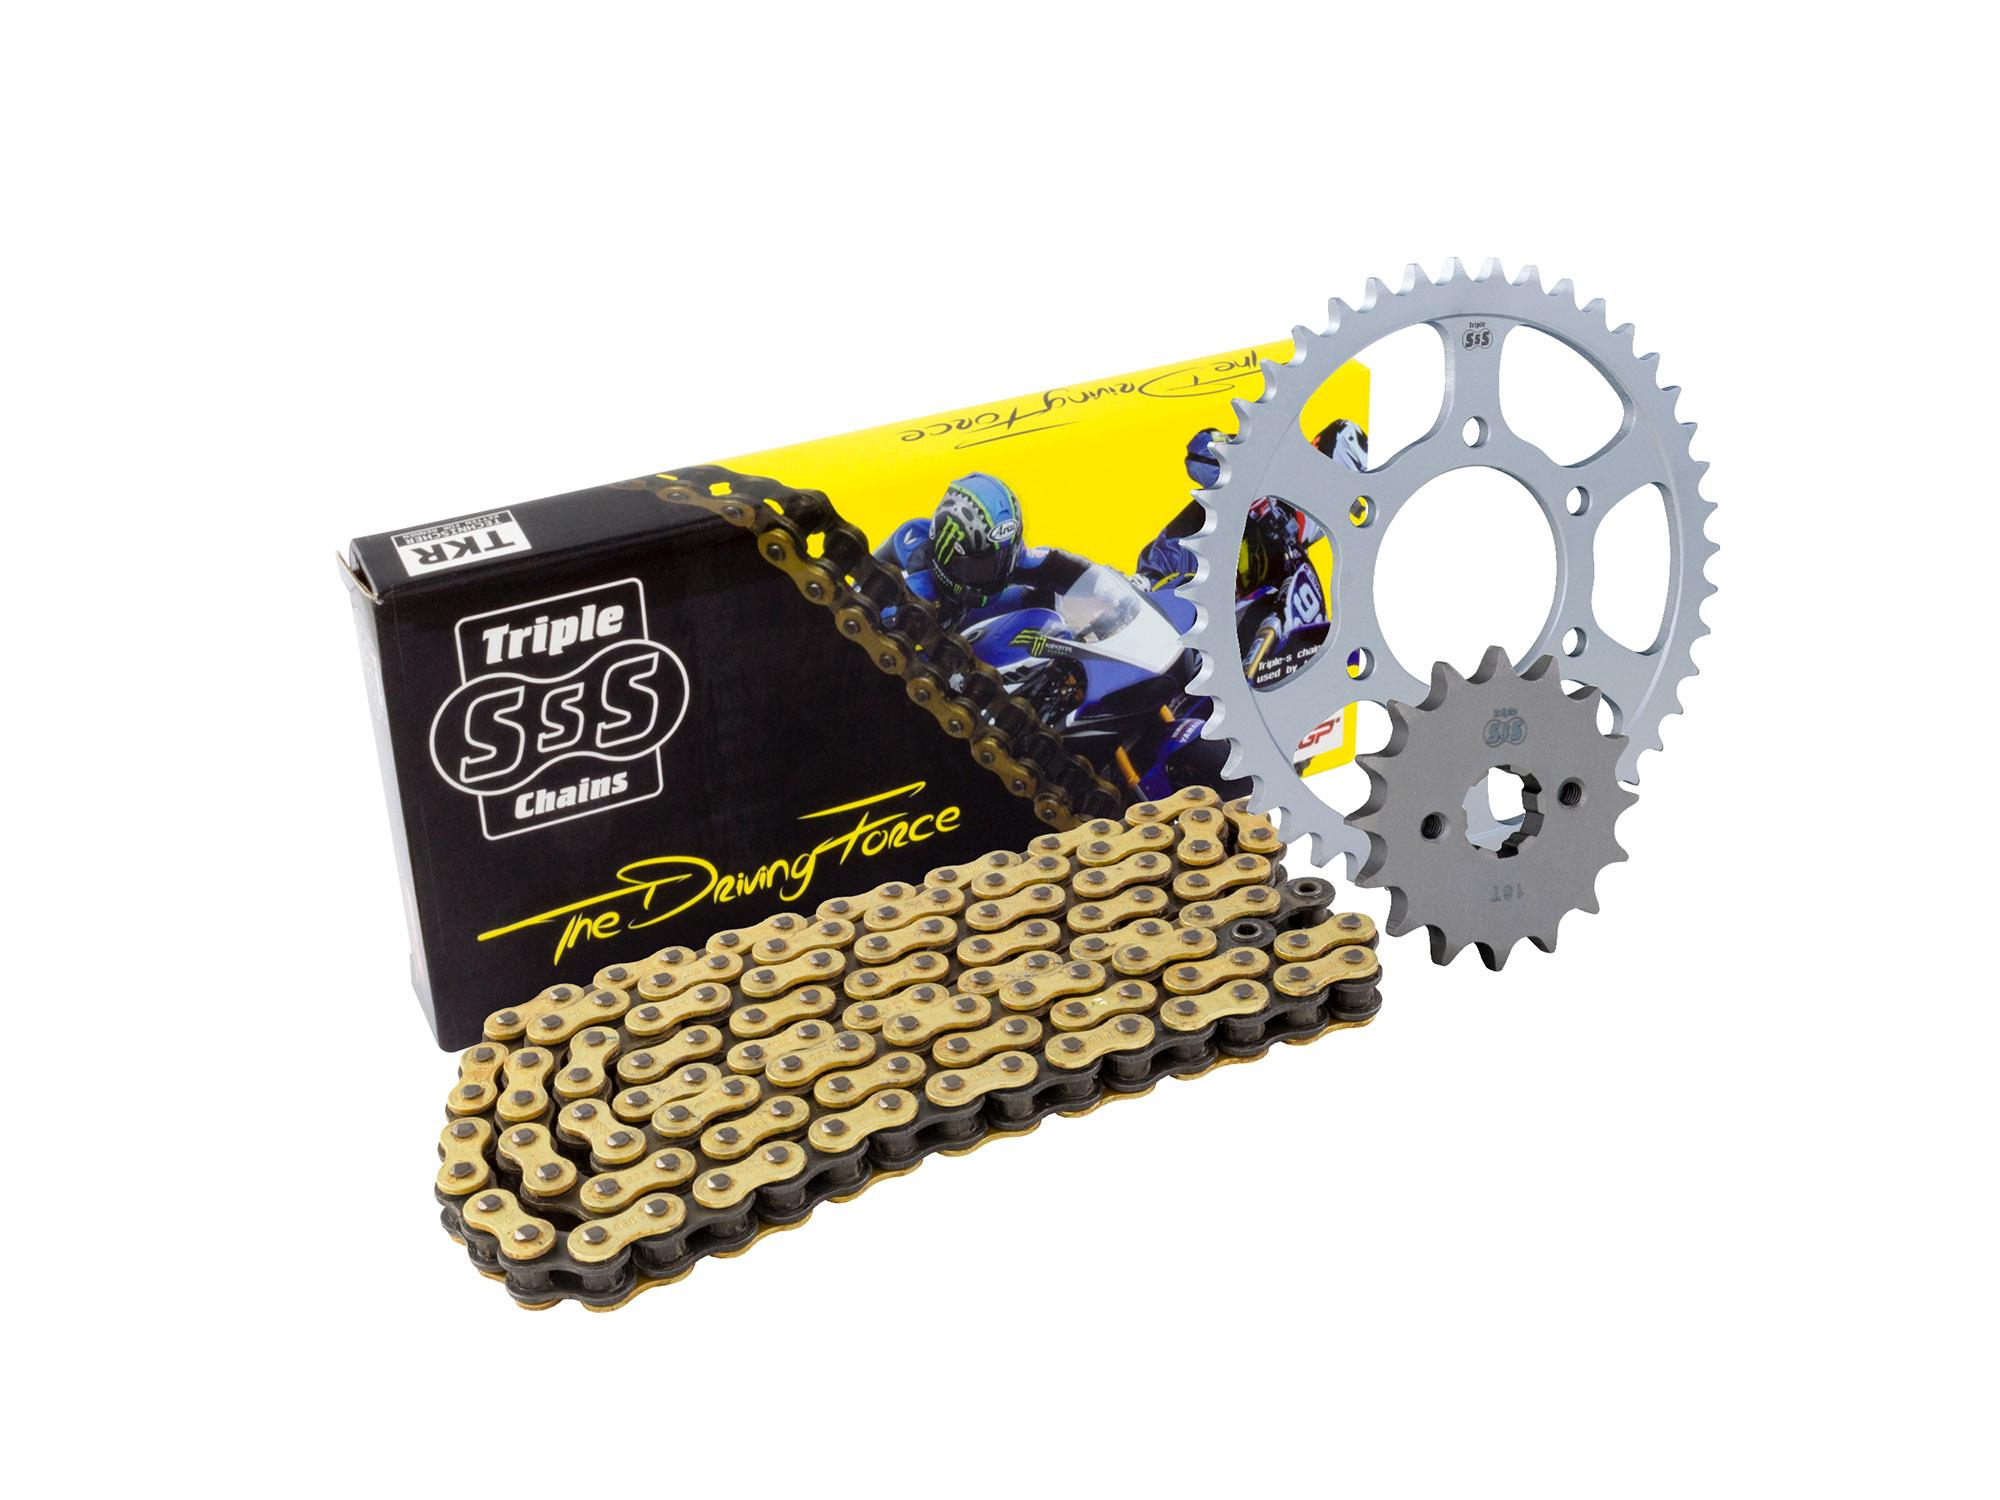 Honda CBR600 FX/FY 99-00 Chain & Sprocket Kit: 16T Front, 44T Rear, HD O-Ring Gold Chain 525H 108Link